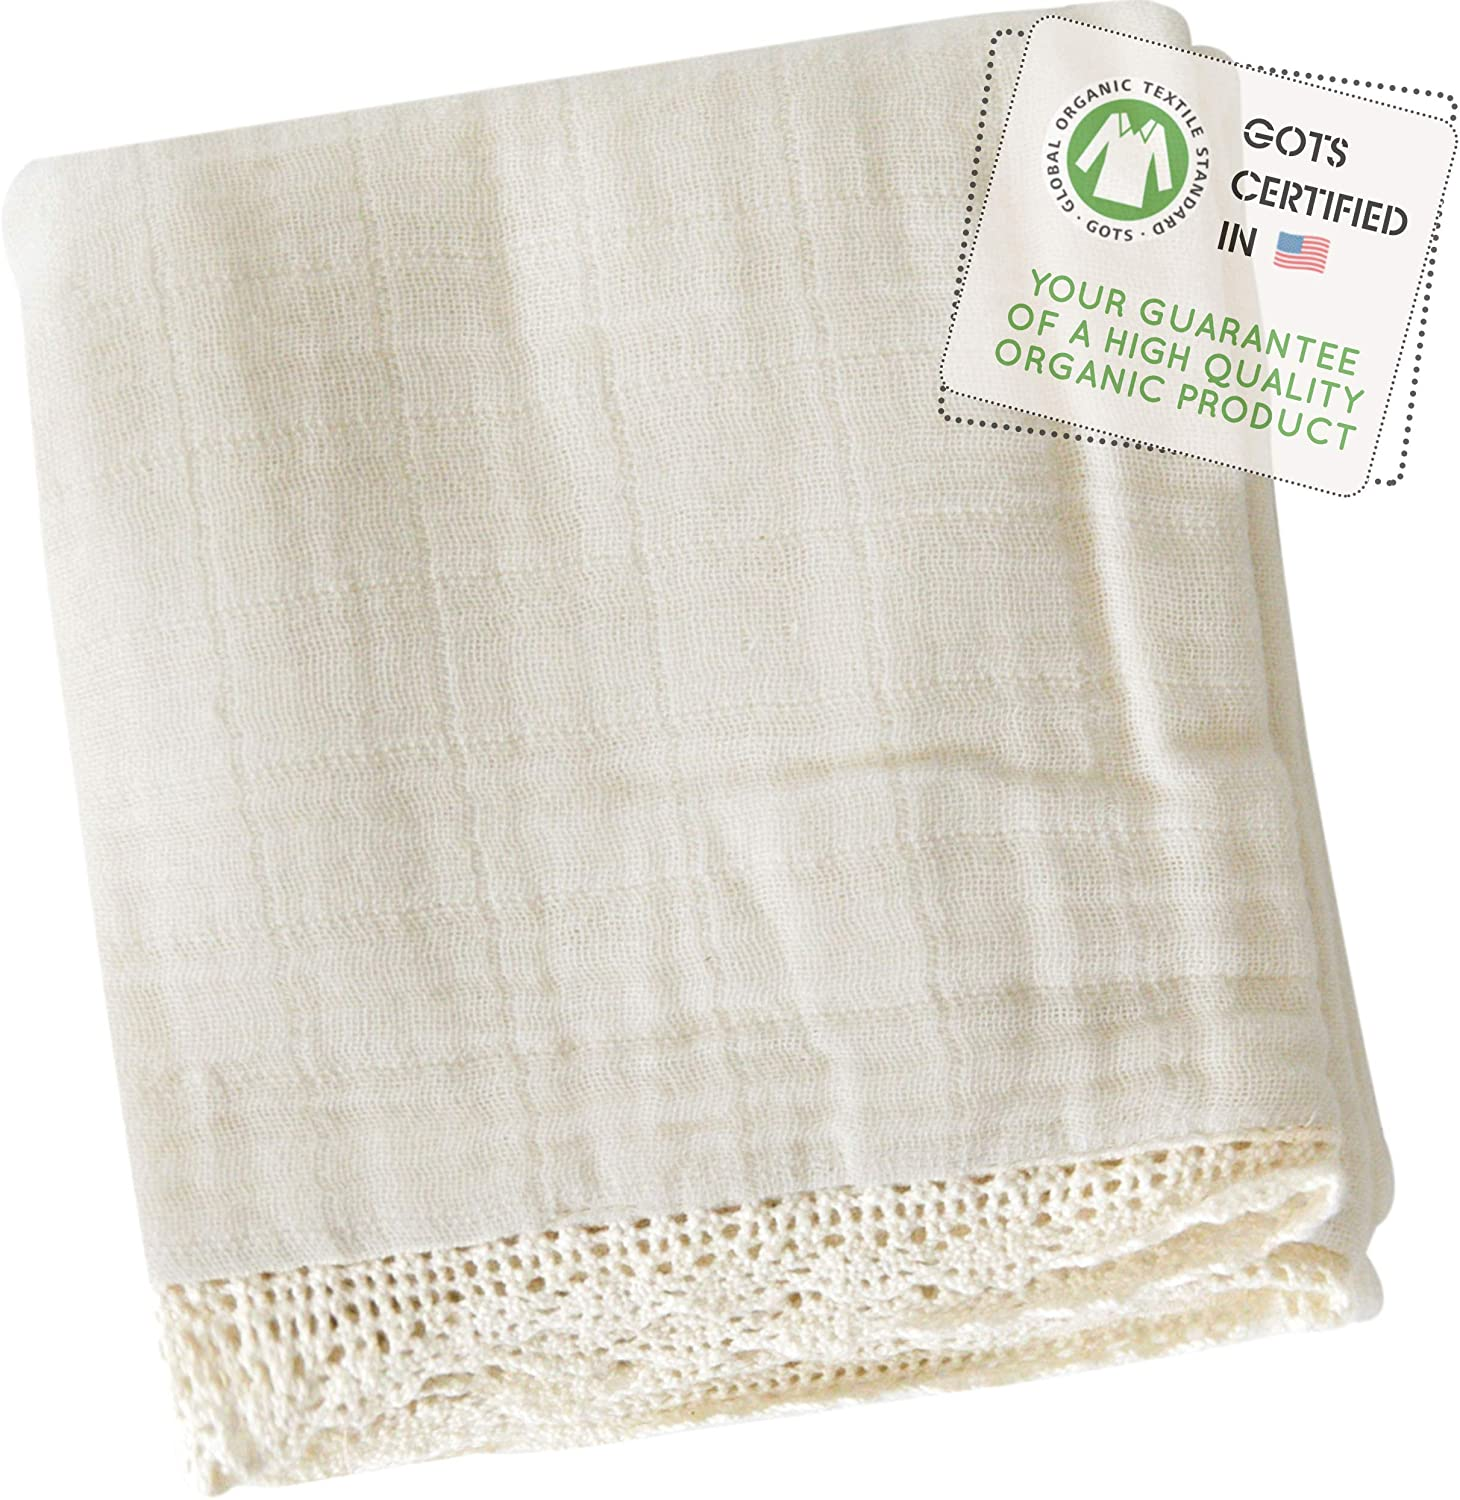 MakeMake Organics Organic Baby Blanket GOTS Certified Organic Cotton Muslin Blanket Toddler Daycare Bed Blanket Large Size Breathable Hypoallergenic Boys Girls Natural Lace (55